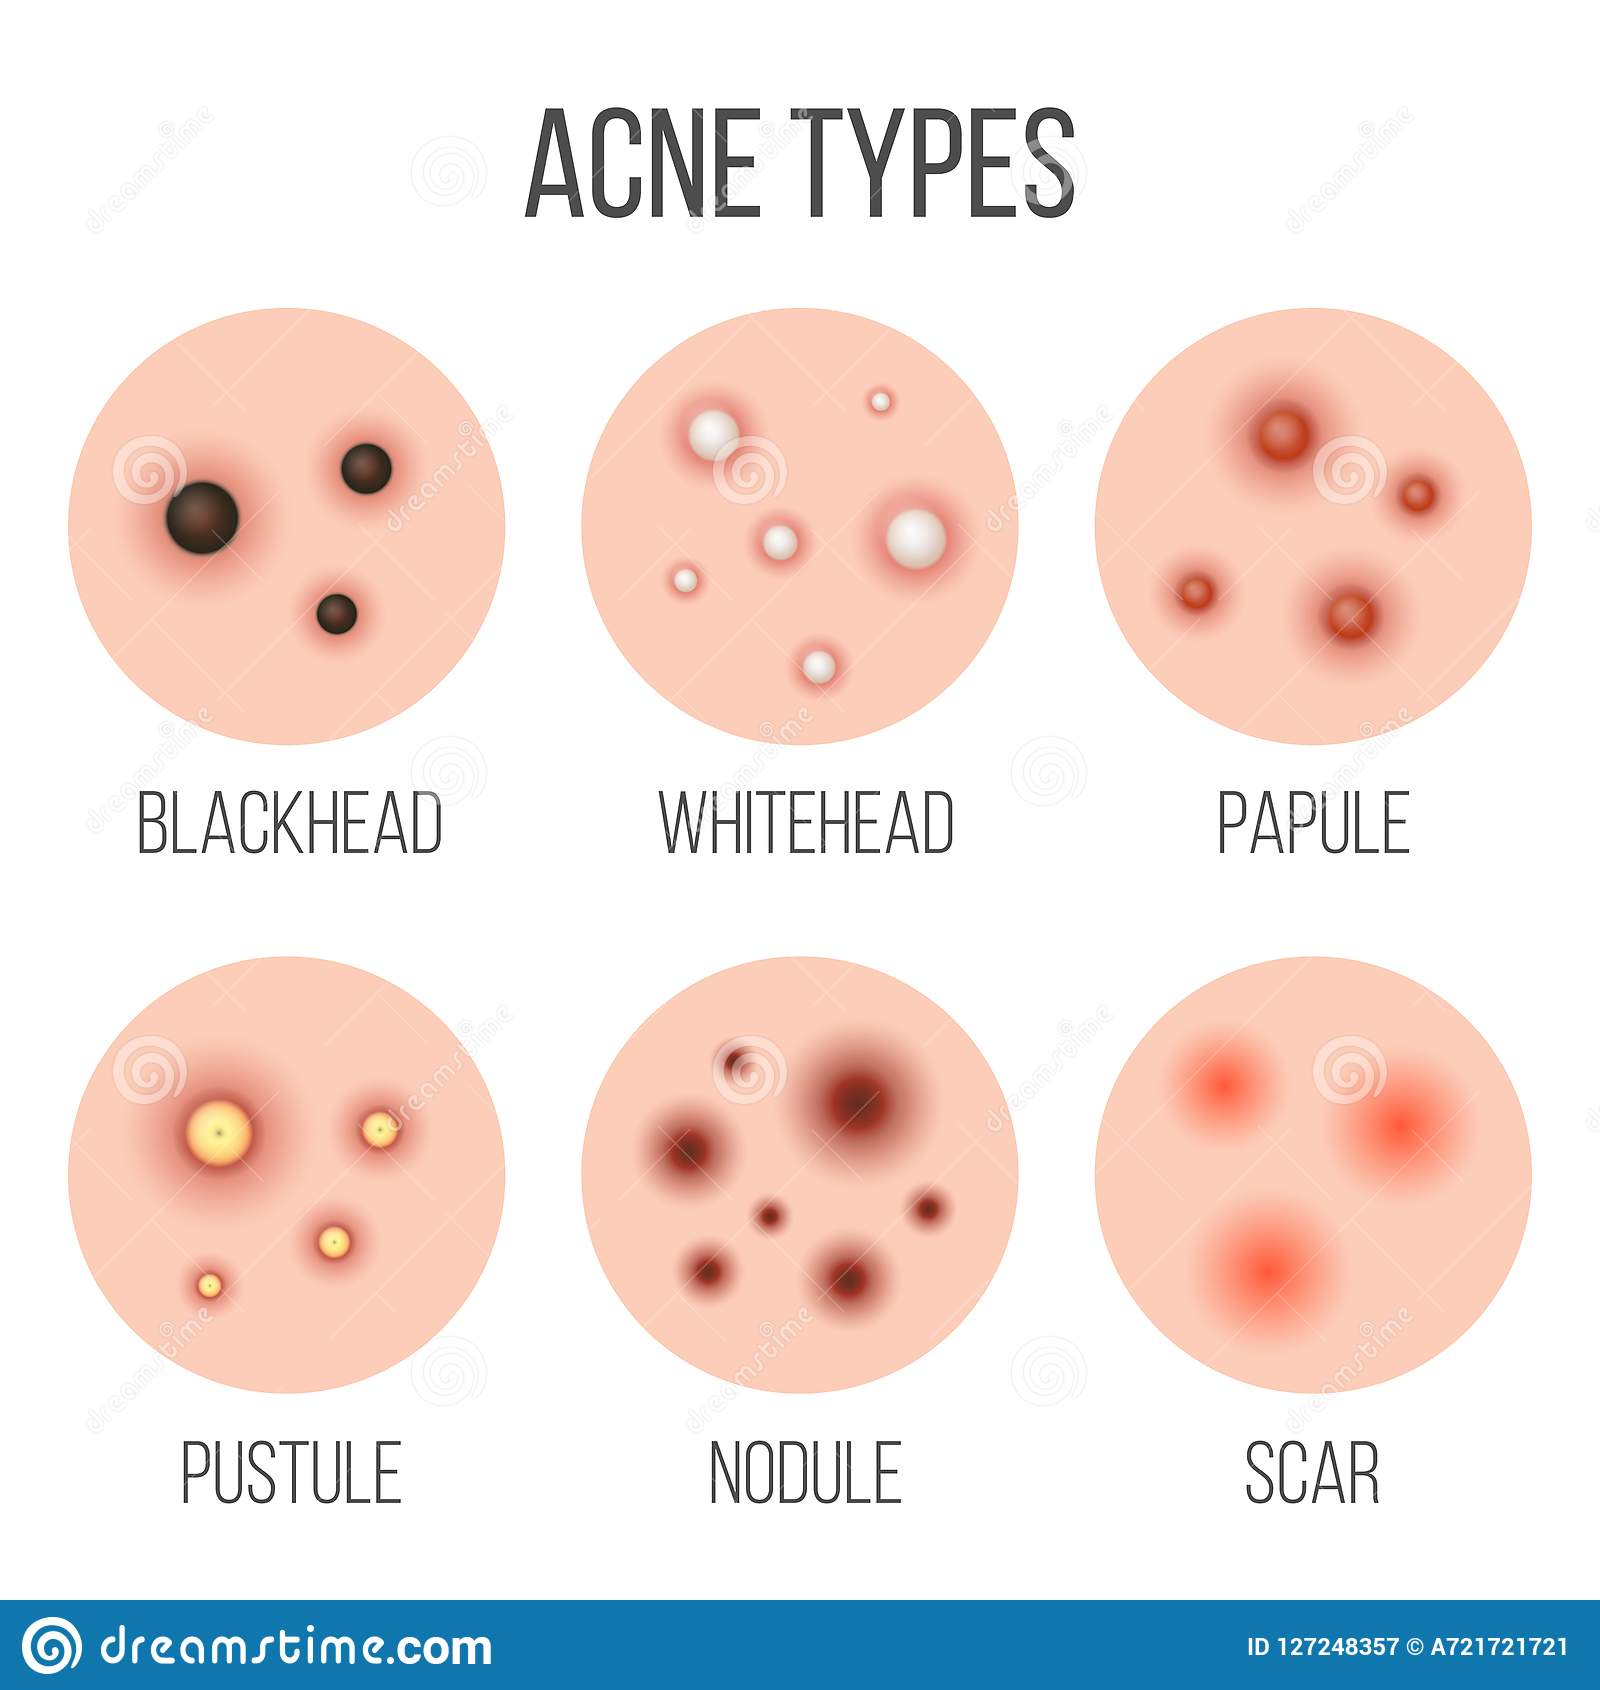 Creative vector illustration types of acne, pimples, skin pores, blackhead, whitehead, scar, comedone, stages diagram